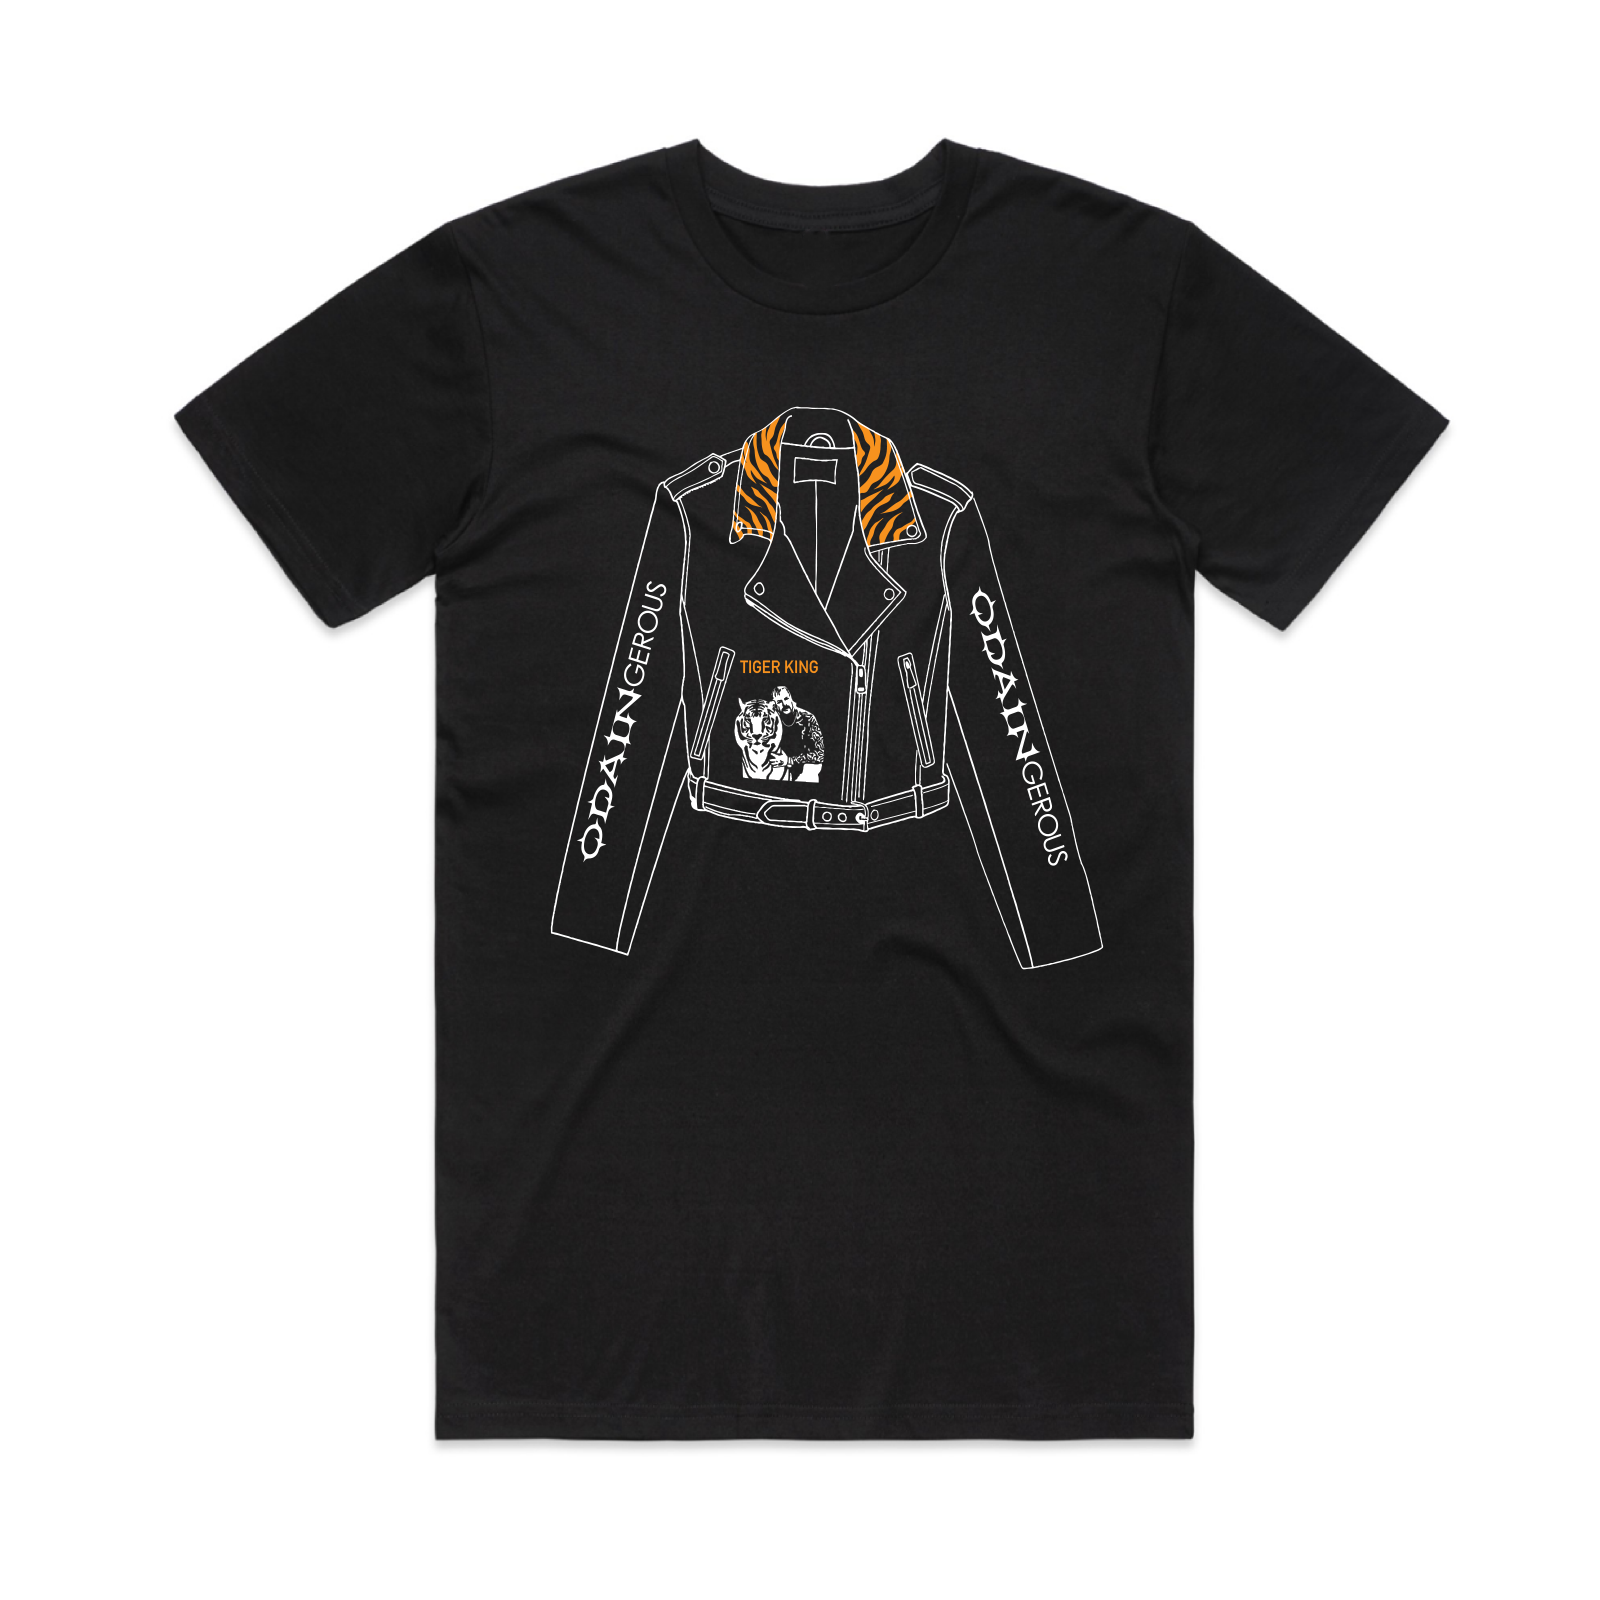 """Odaingerous Streetwear Brand Announces Exclusive """"Revenge"""" Collection with the """"Tiger King"""", Joe Exotic"""